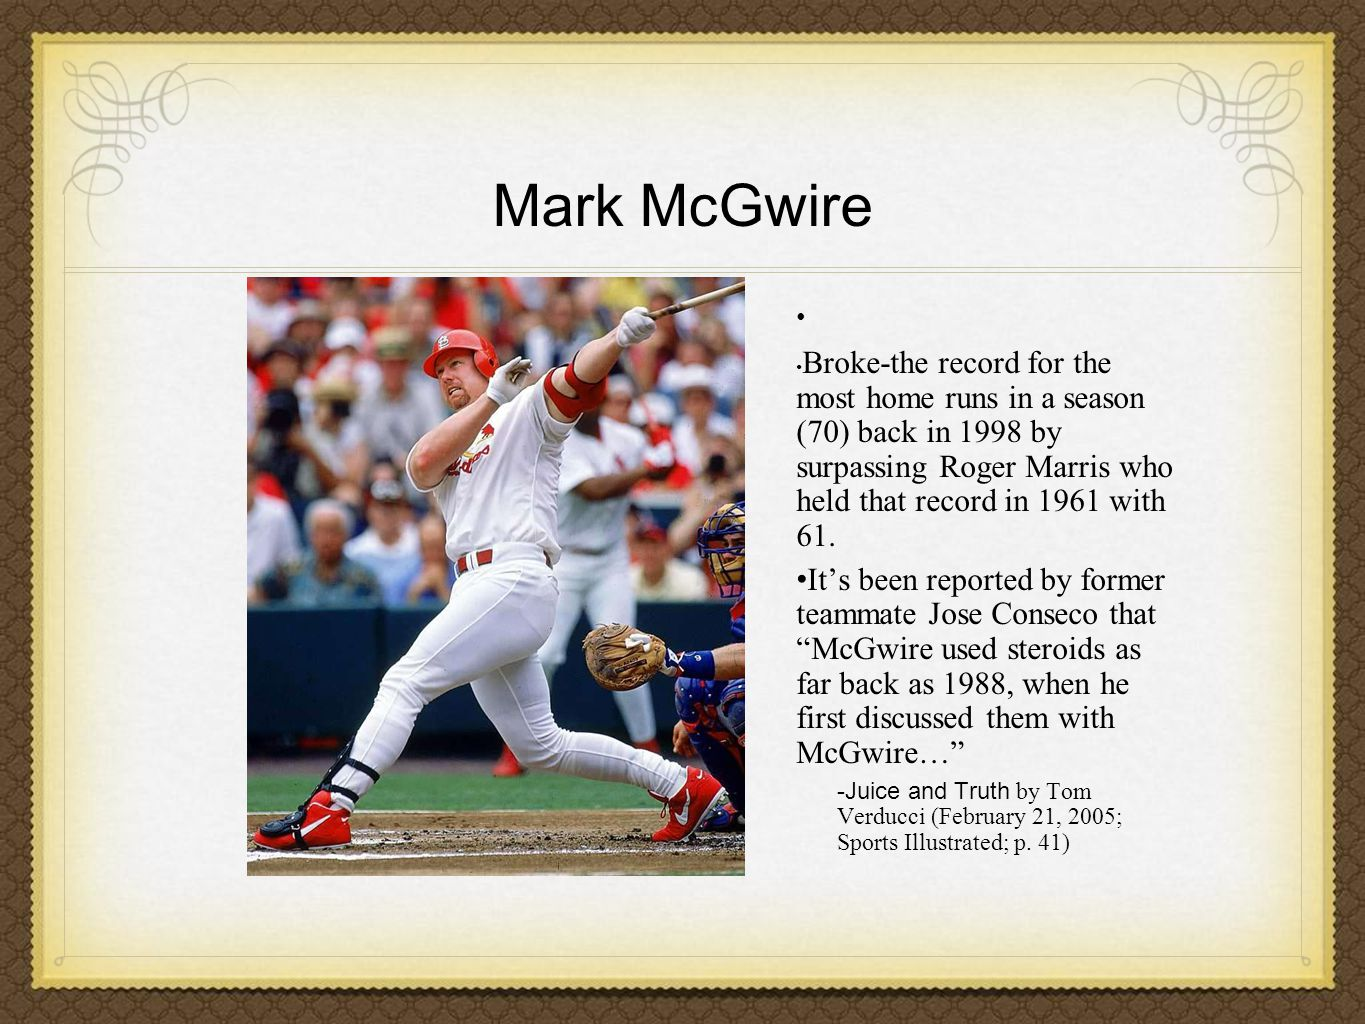 Mark McGwire Broke-the record for the most home runs in a season (70) back in 1998 by surpassing Roger Marris who held that record in 1961 with 61.